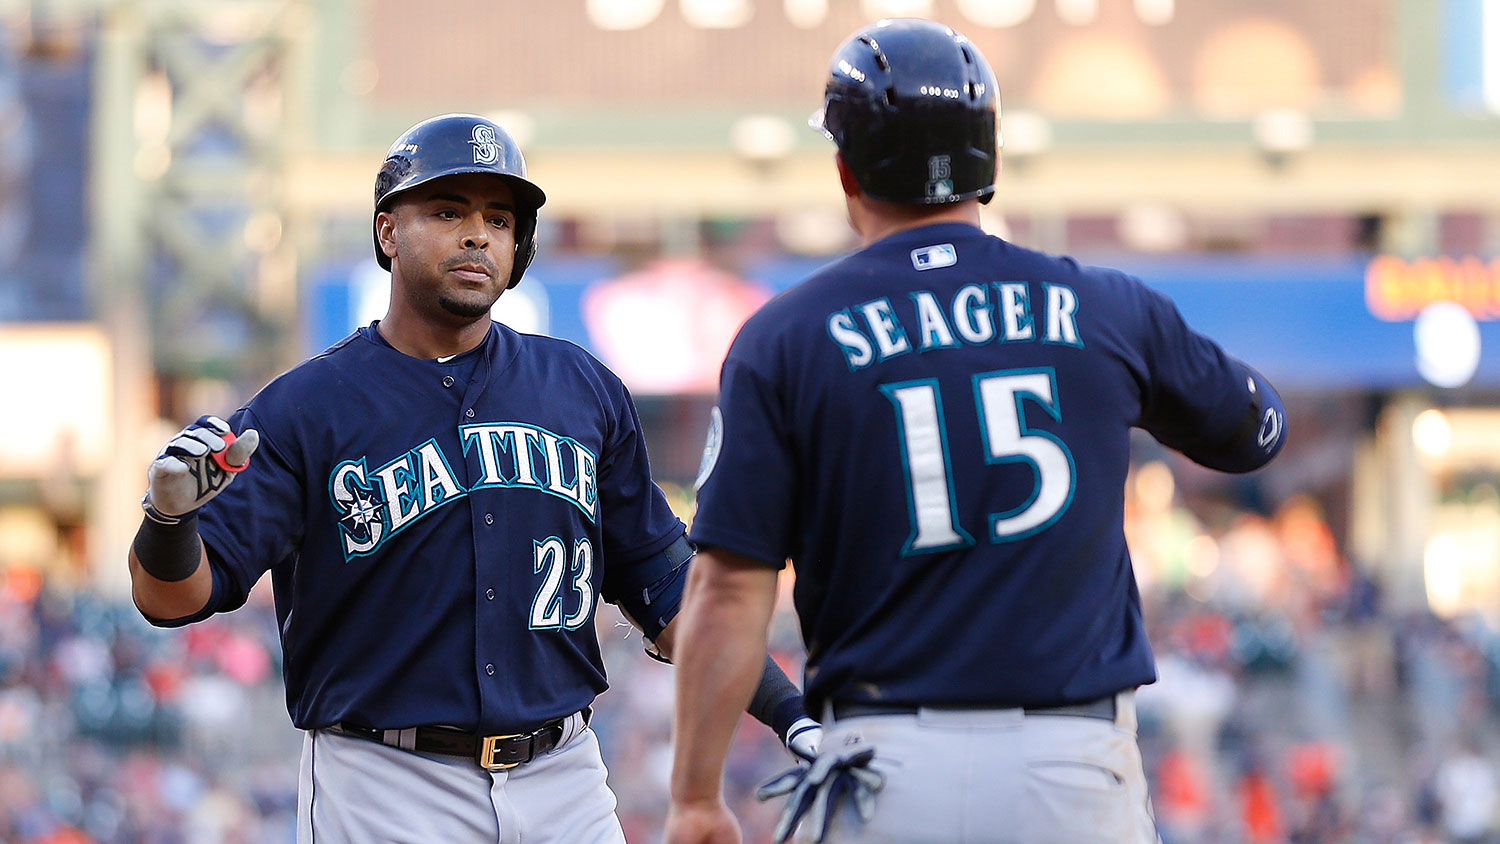 cruz-seager-mariners